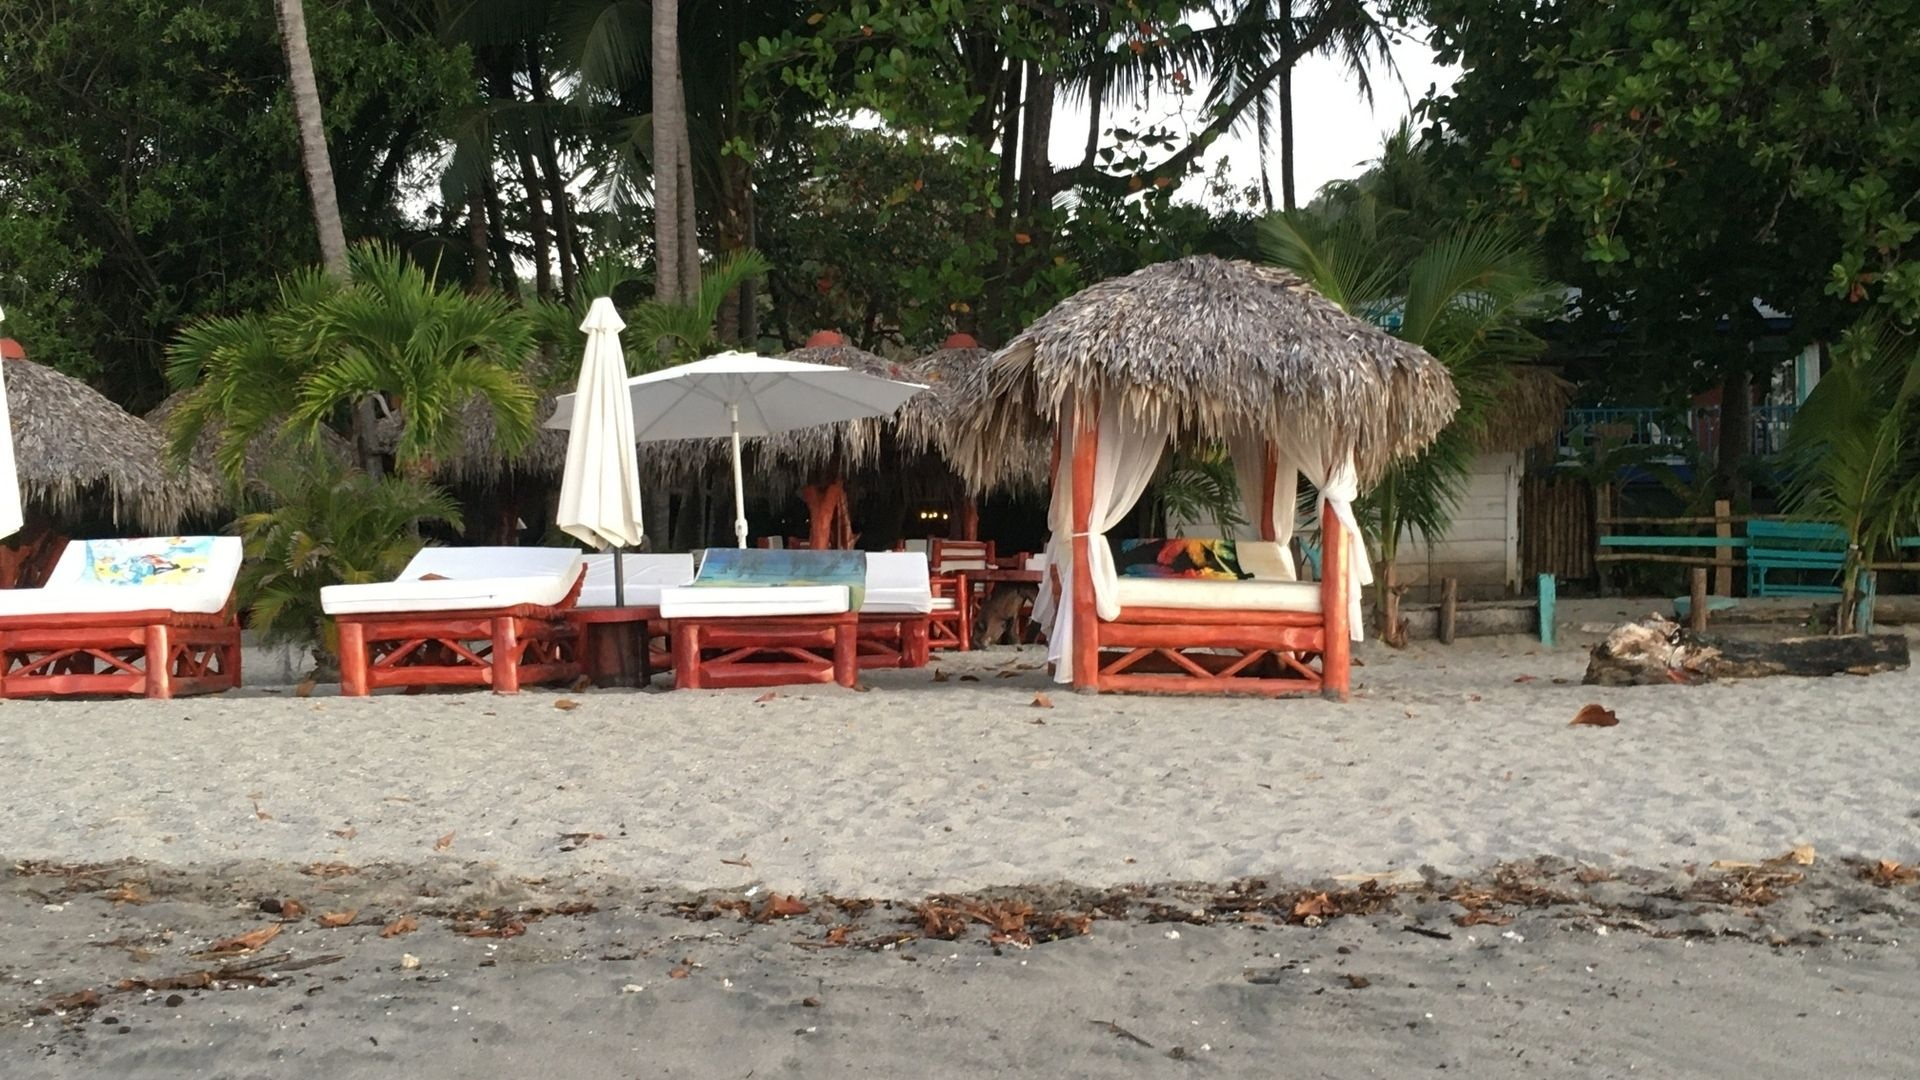 Rent one of these sweet chairs & relax at the beach in Samara